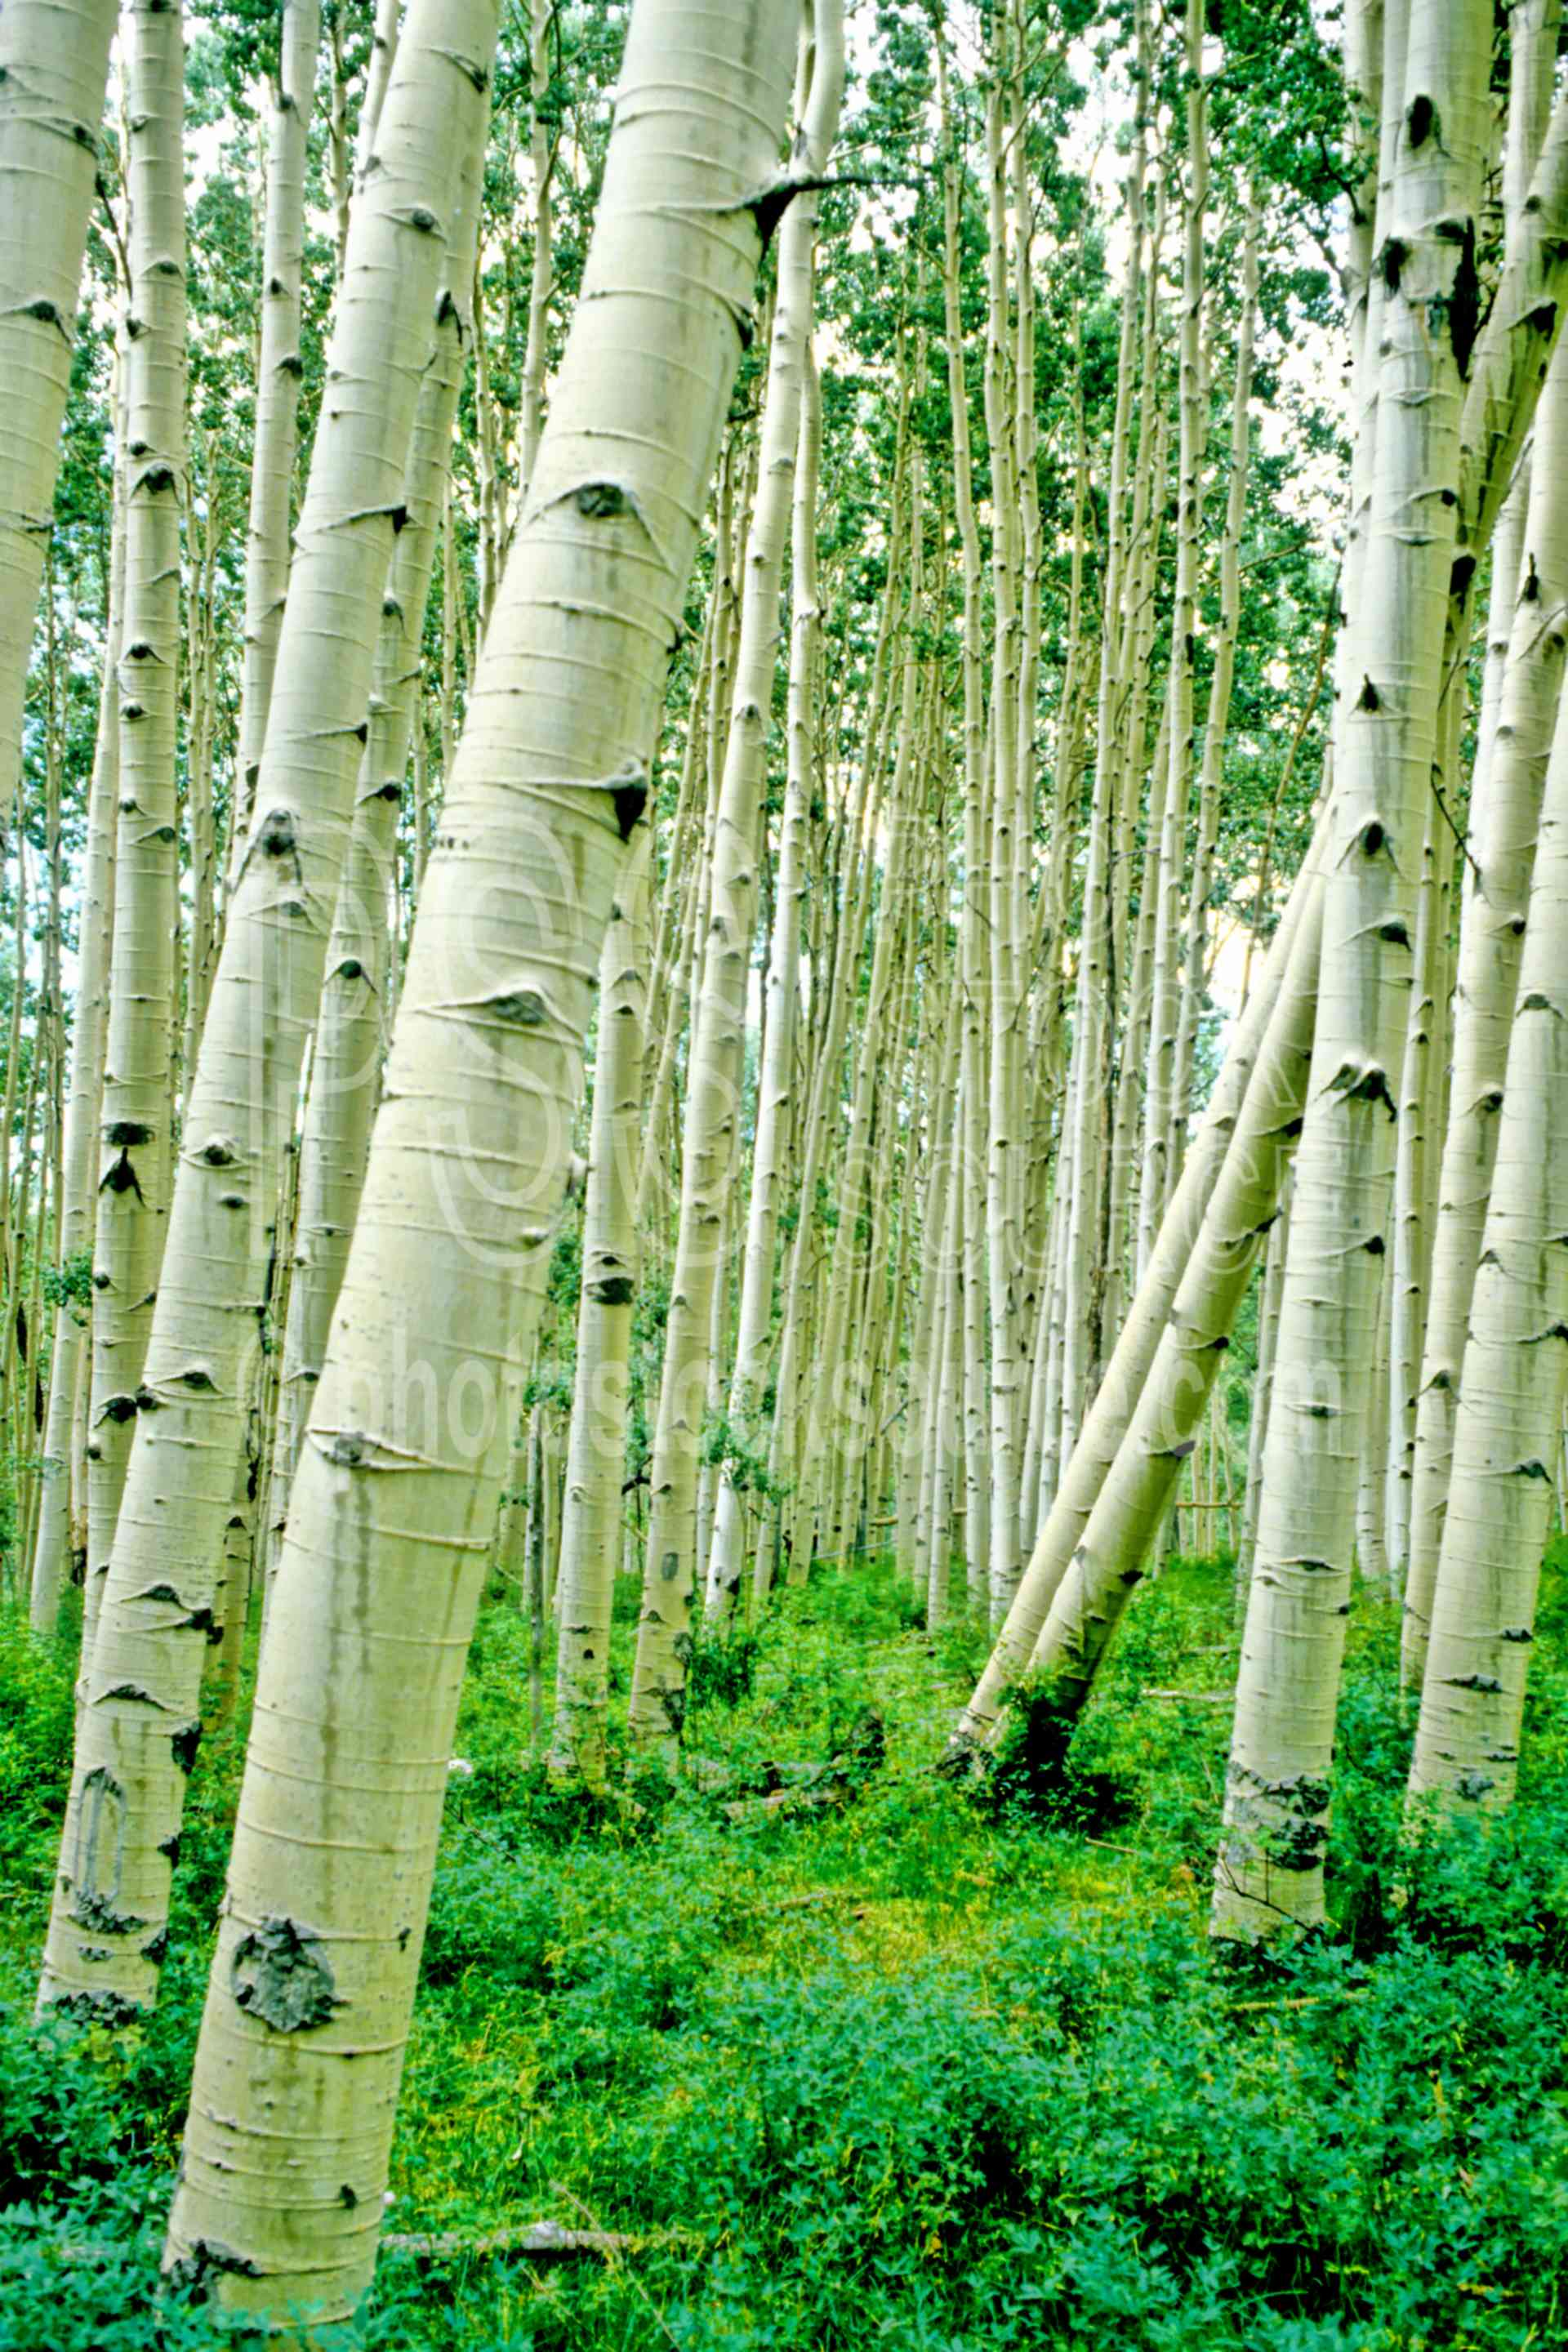 Aspen Trees,aspen tree,usas,nature